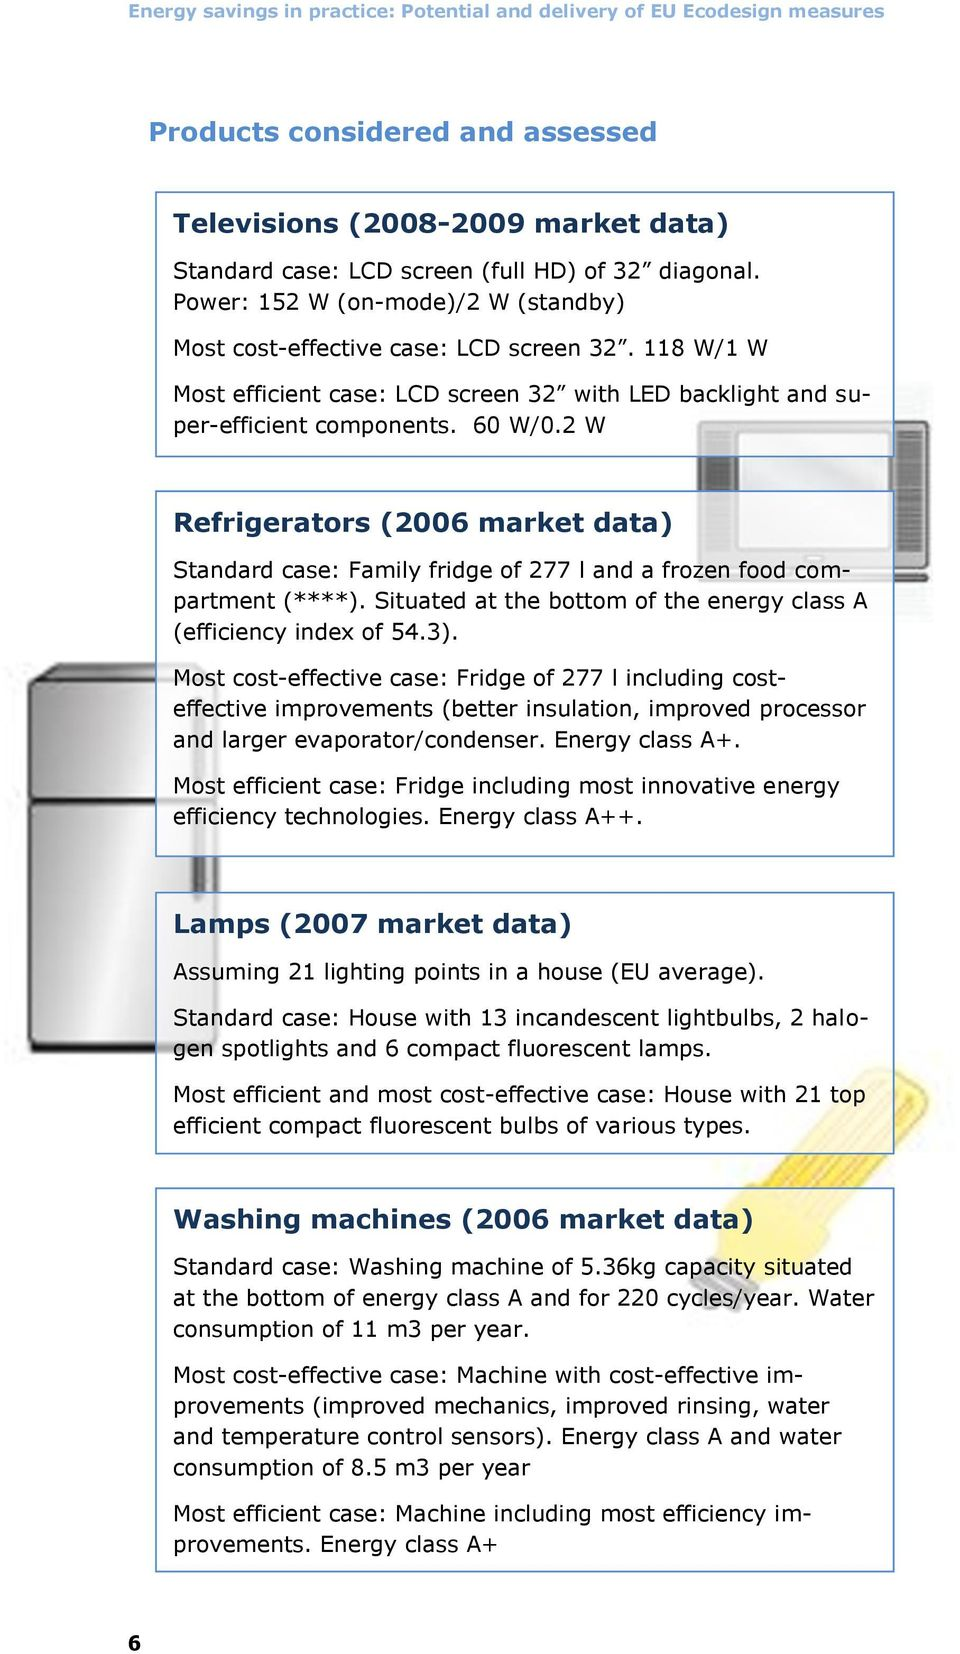 2 W Refrigerators (2006 market data) Standard case: Family fridge of 277 l and a frozen food compartment (****). Situated at the bottom of the energy class A (efficiency index of 54.3).